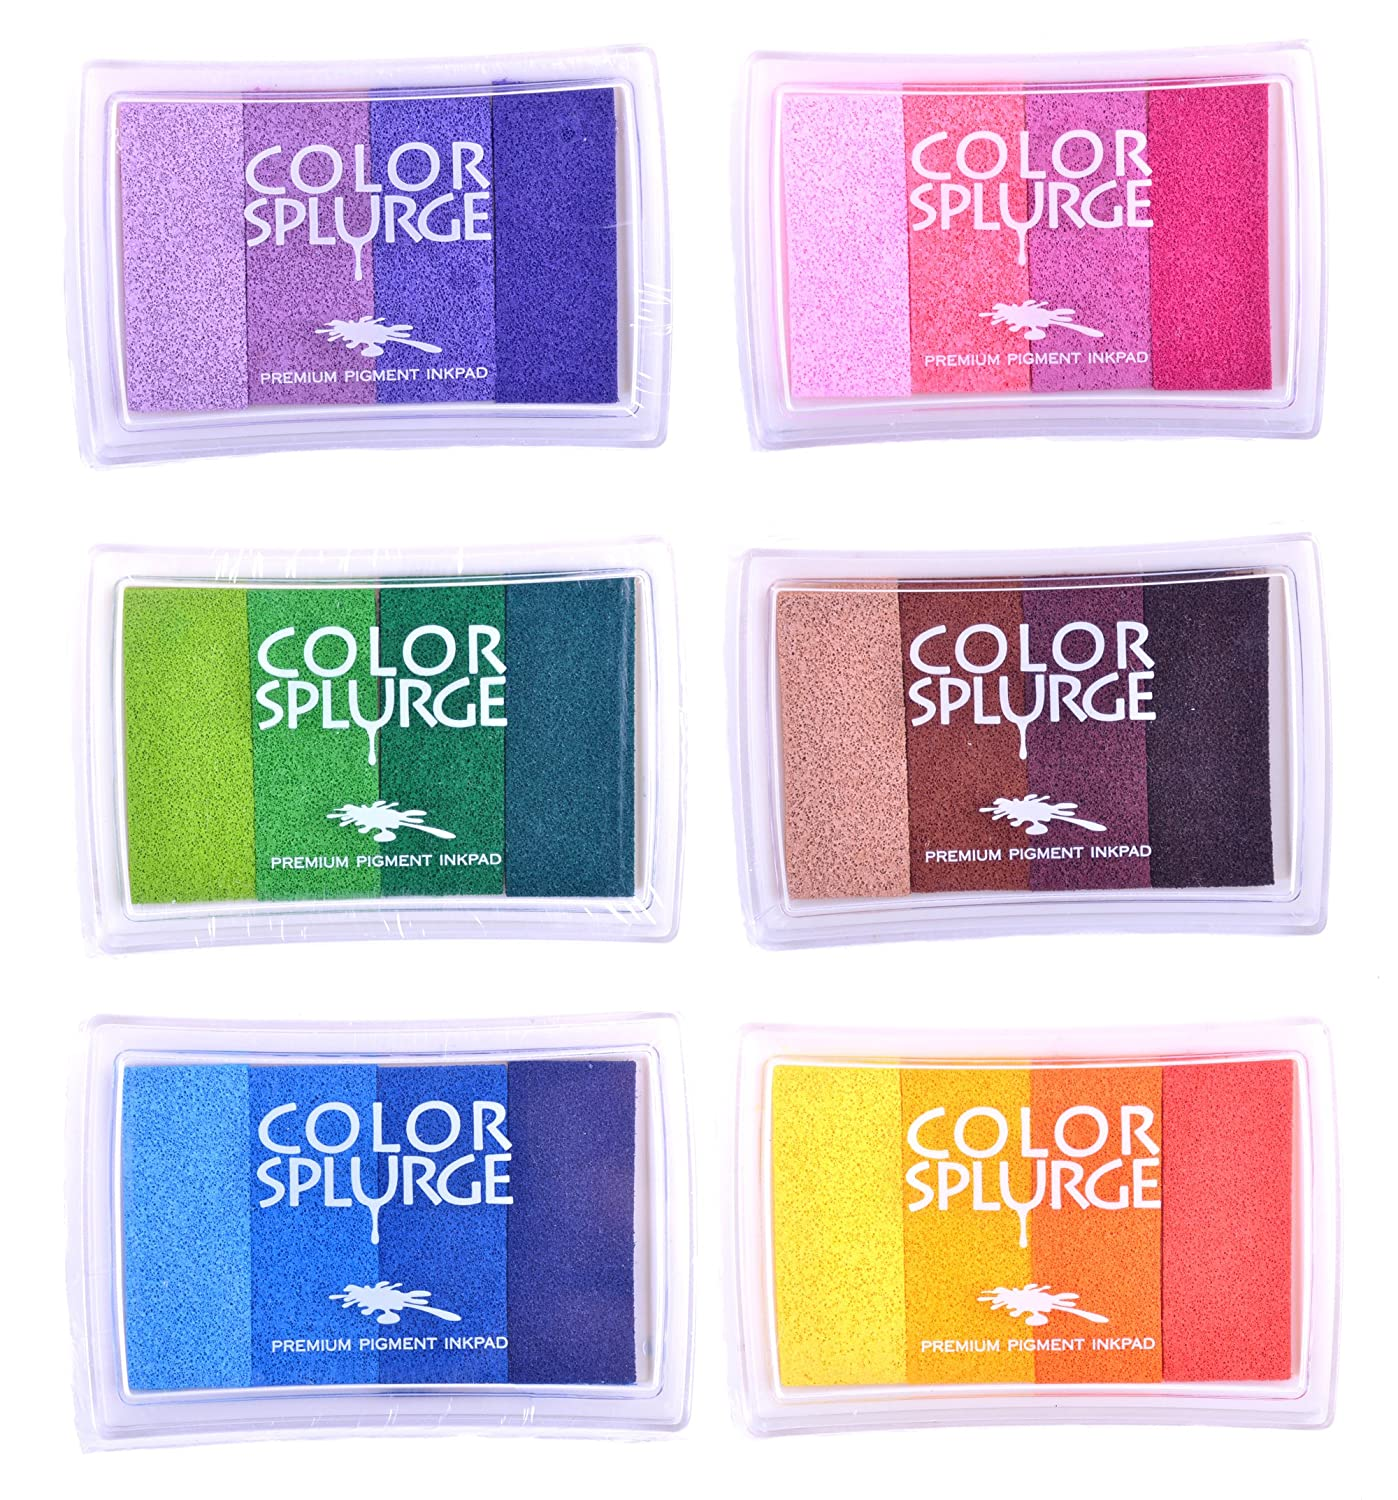 Rainbow Ink Pad Sets Included Kid's Tattoos While Stocks Last - 24 Shades of Beautiful Water-Based Colors - for All Ages & Infinite Uses Colour Splurge FBA_3423232